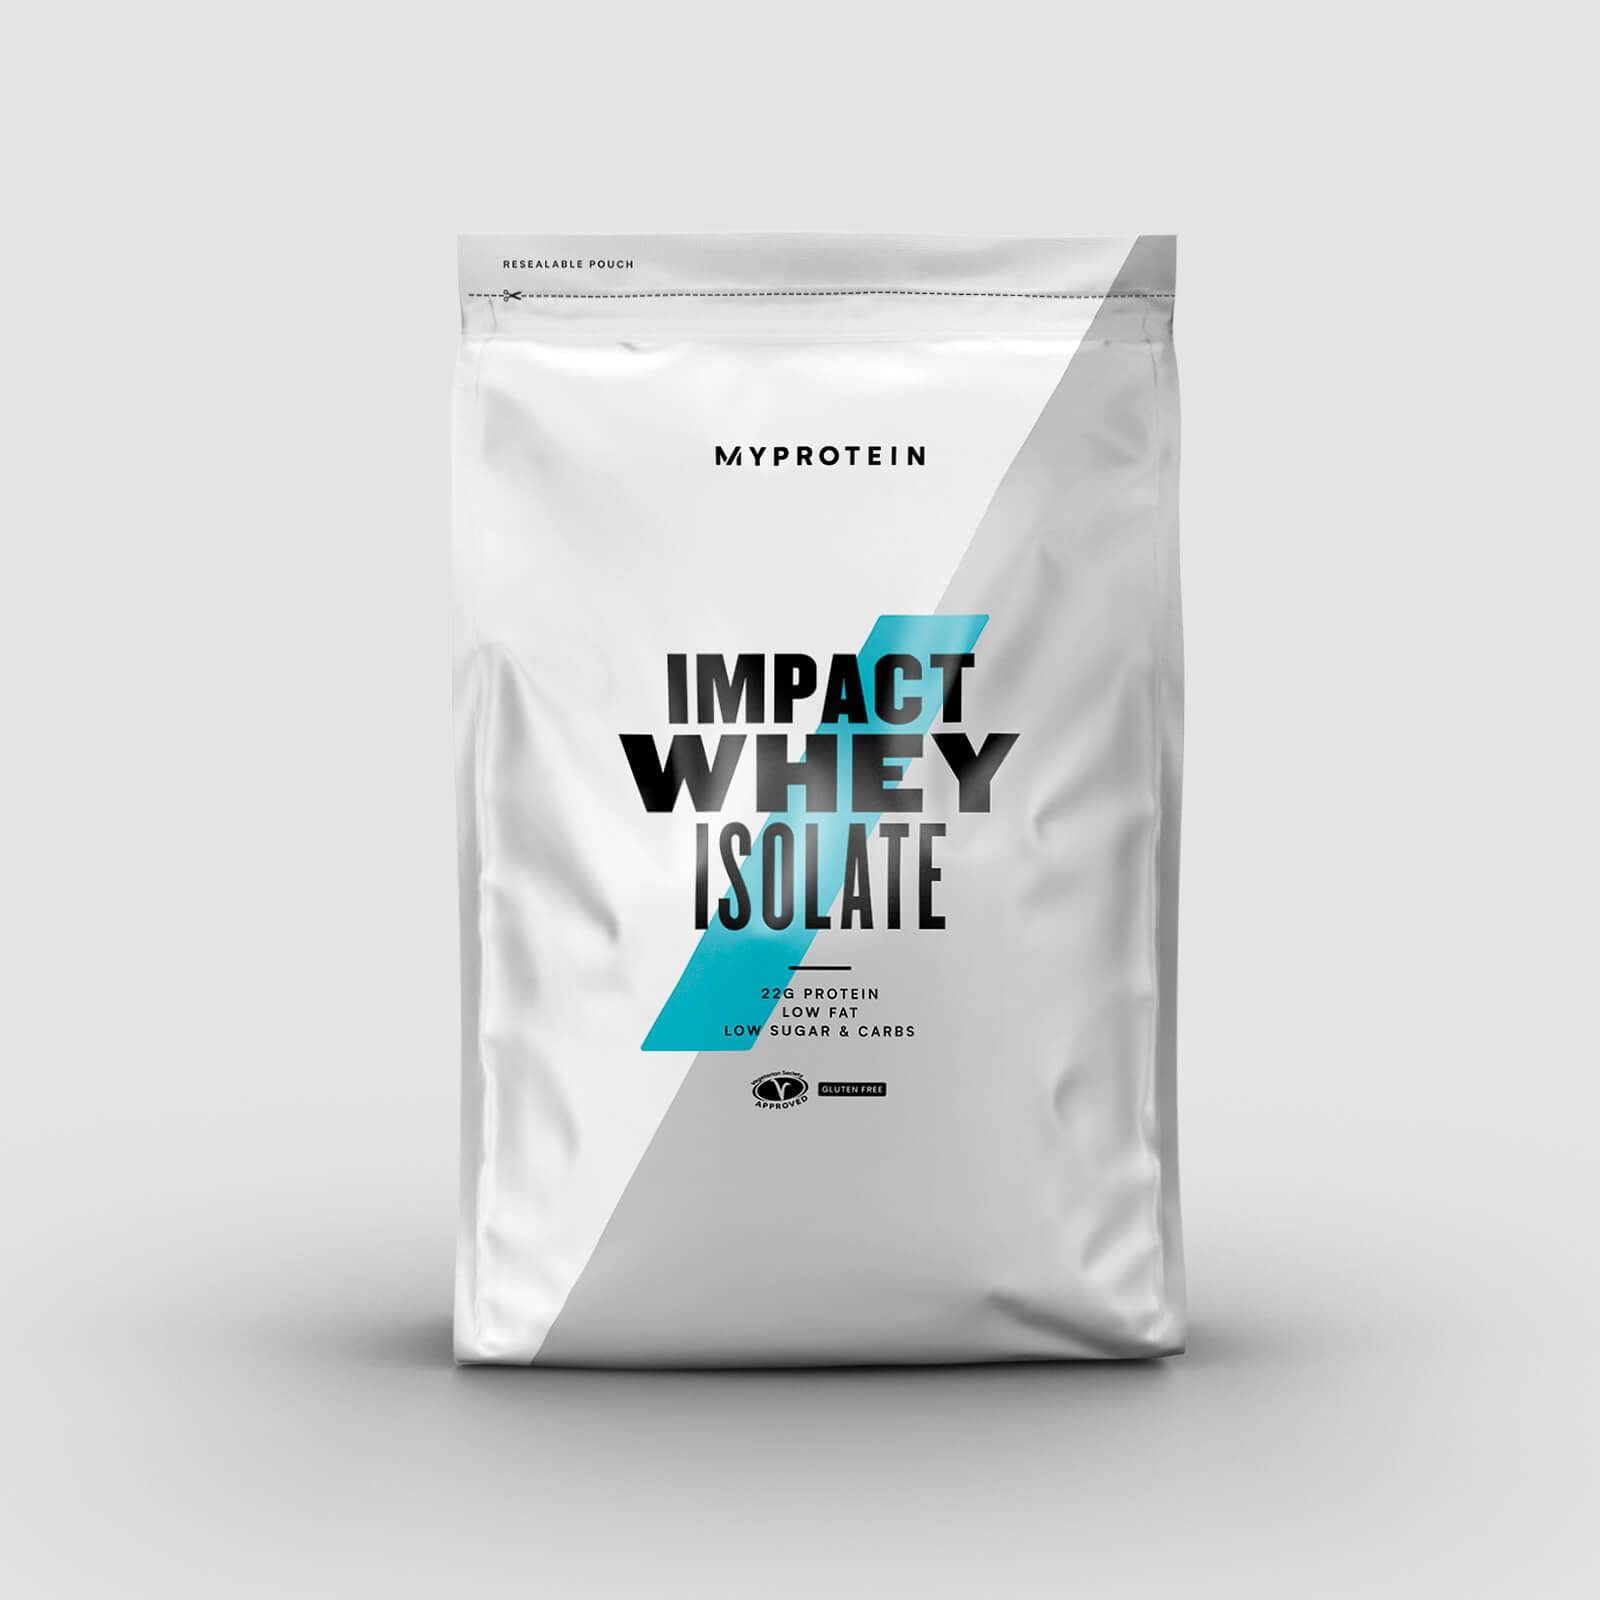 Myprotein Impact Whey Isolate - 1kg - Myrtille